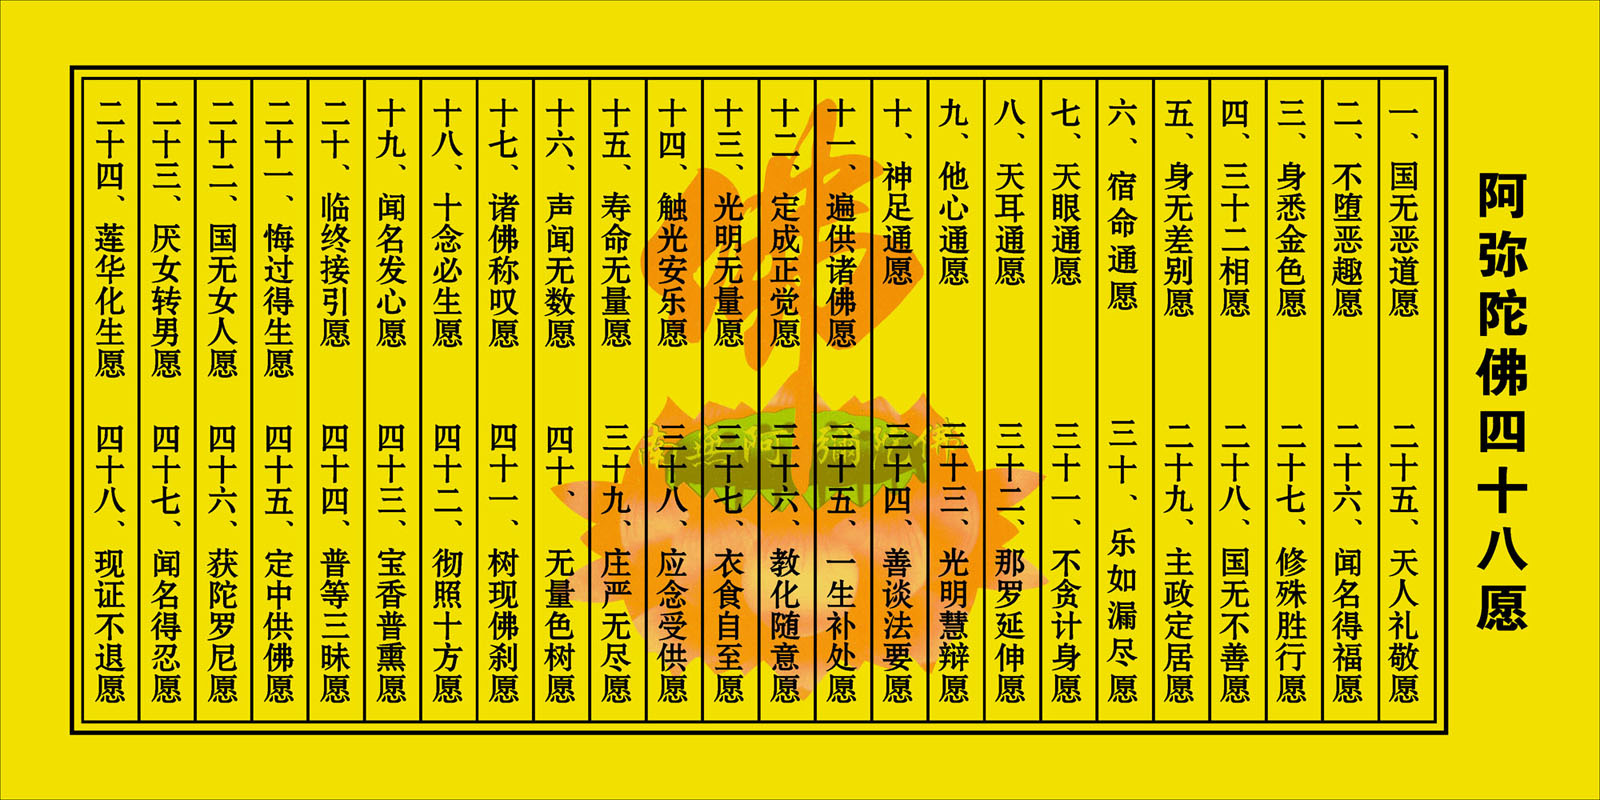 698 poster panels printed stickers flipchart posters photo printing 425 amitabha forty-eight willing